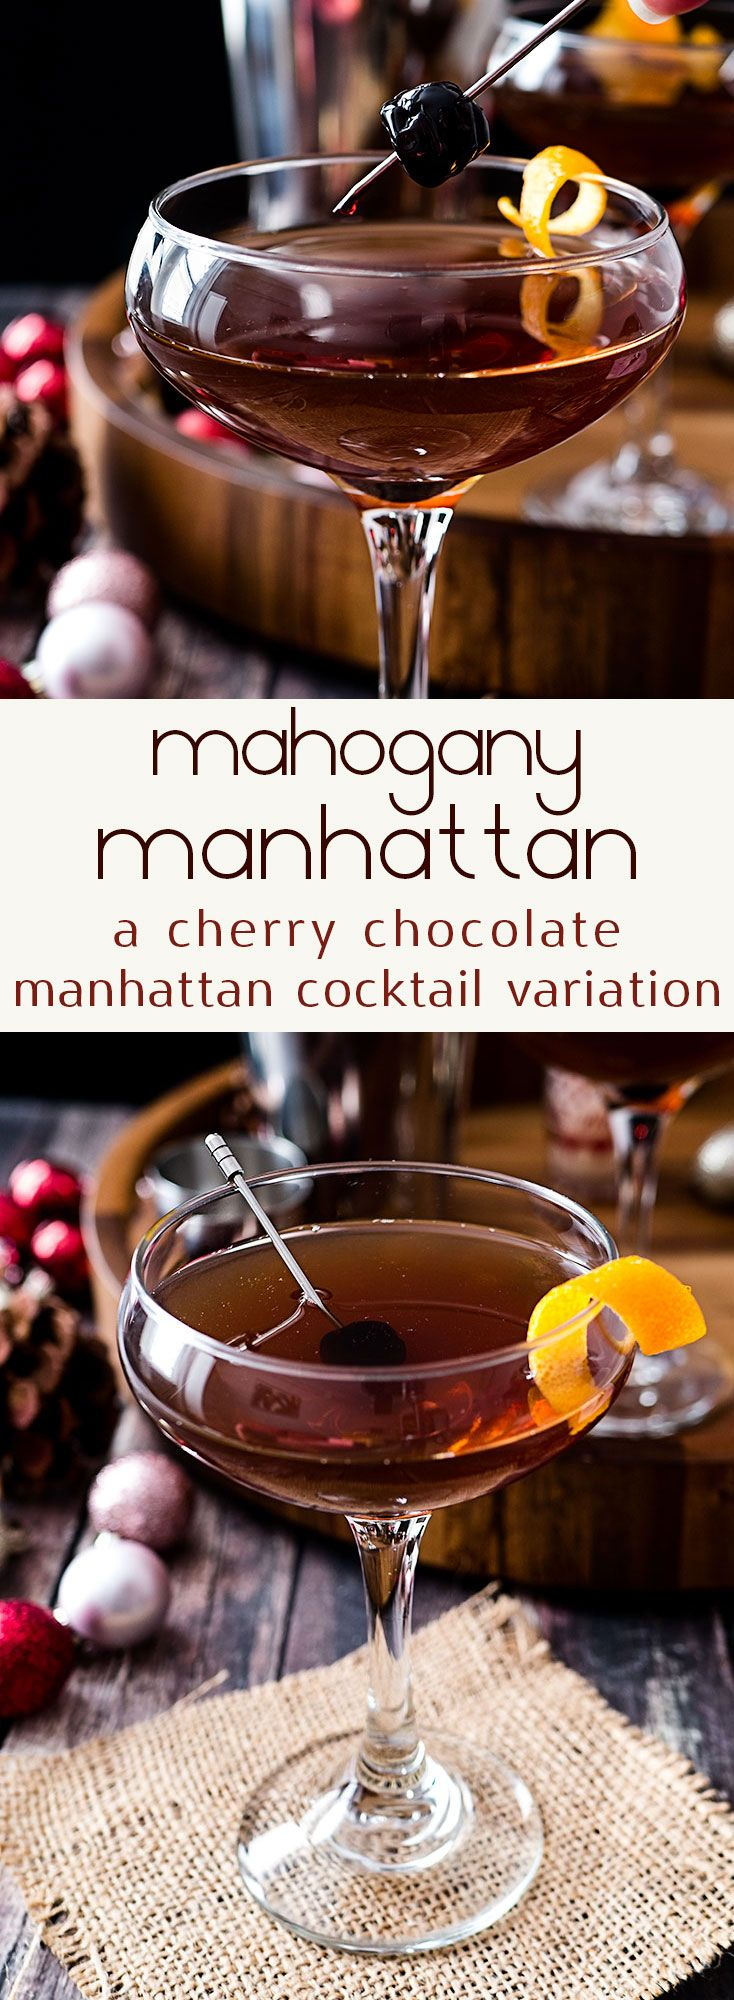 Named the Mahogany Manhattan for its deep reddish-brown color this cherry chocolate Manhattan va